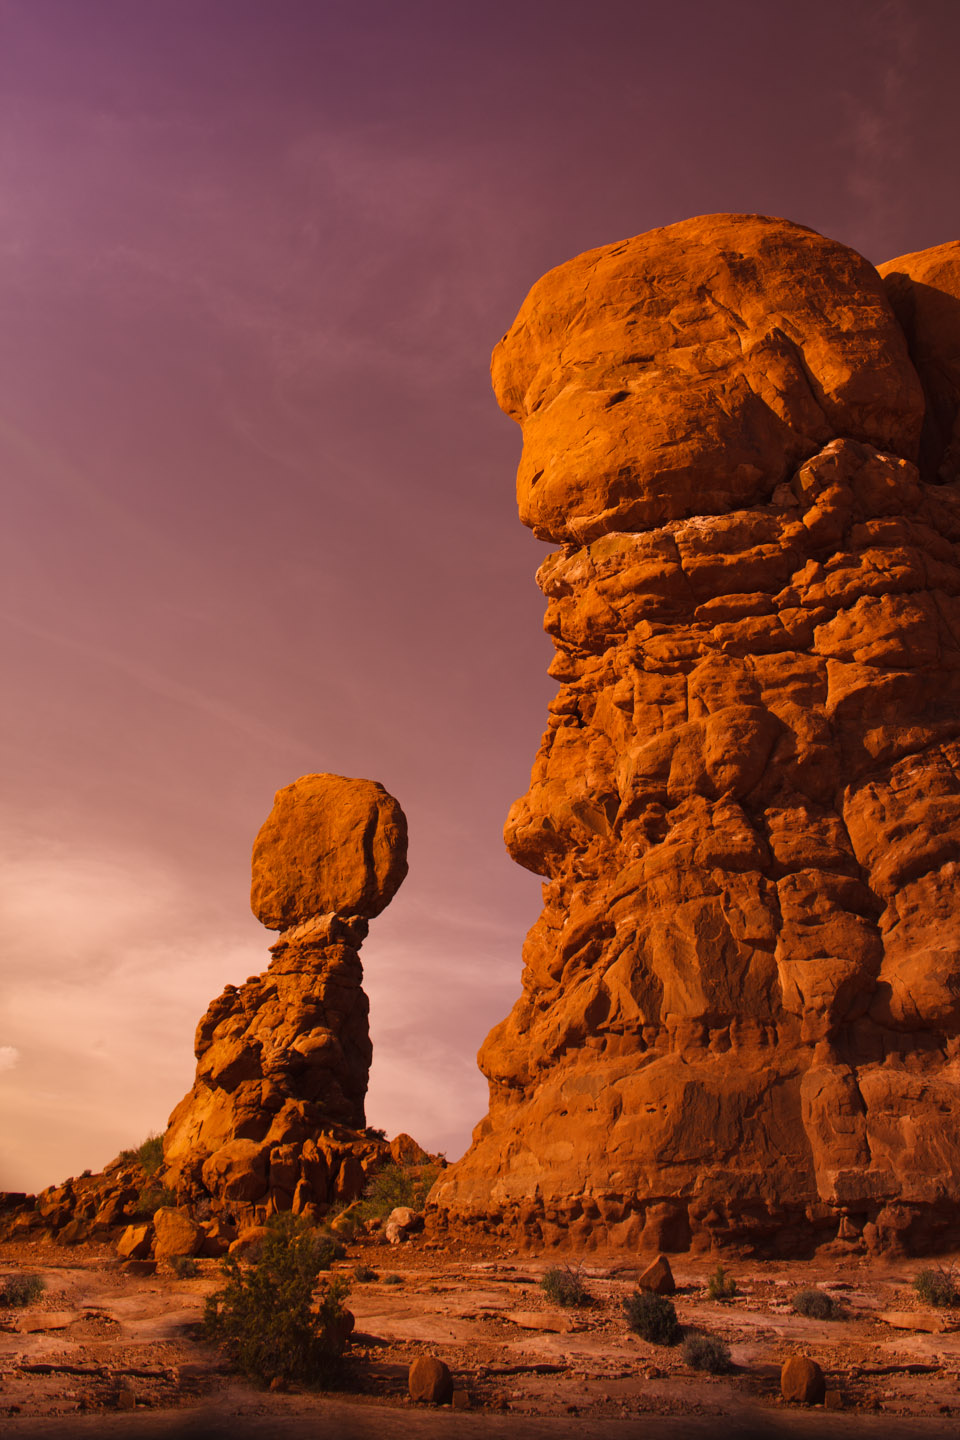 Moab balancing rock looks like Mars